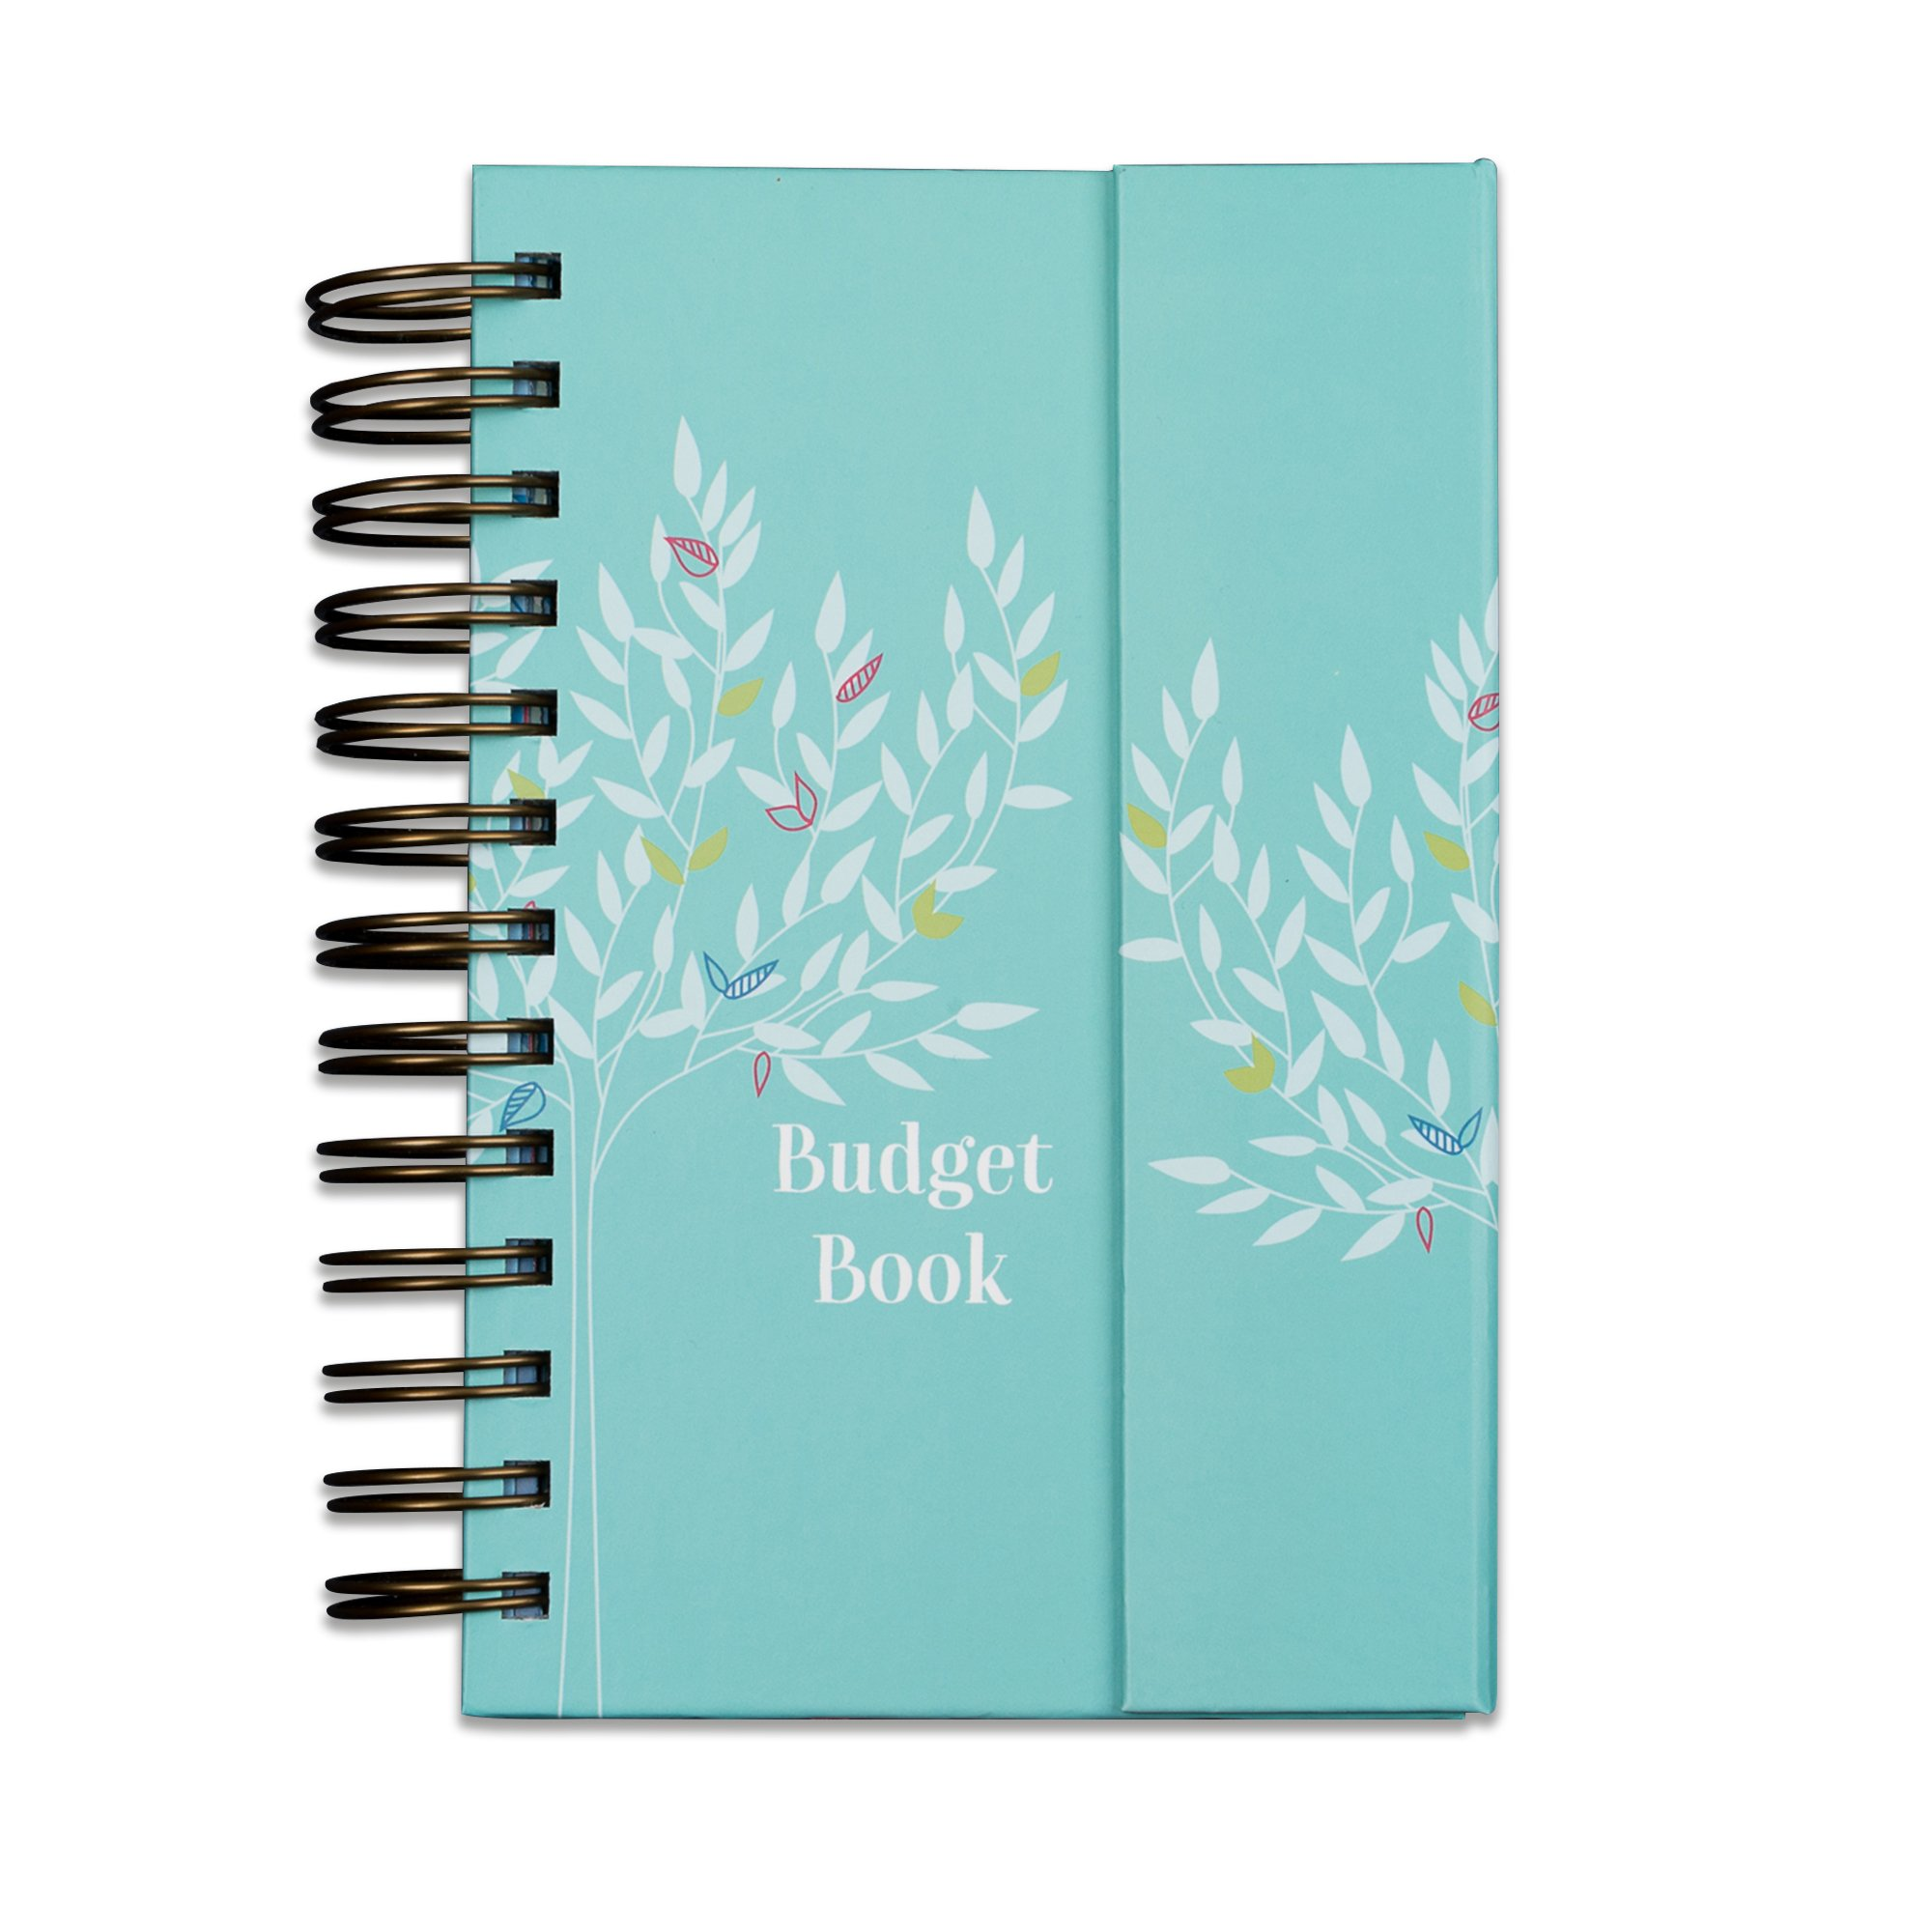 Boxclever Press Budget Book. Pretty Monthly Bill Organizer & Budget Planner. Accounts Book to Keep Track of Finances. Household Expenses & Finance Tracker with Pockets to Store Receipts & Bills